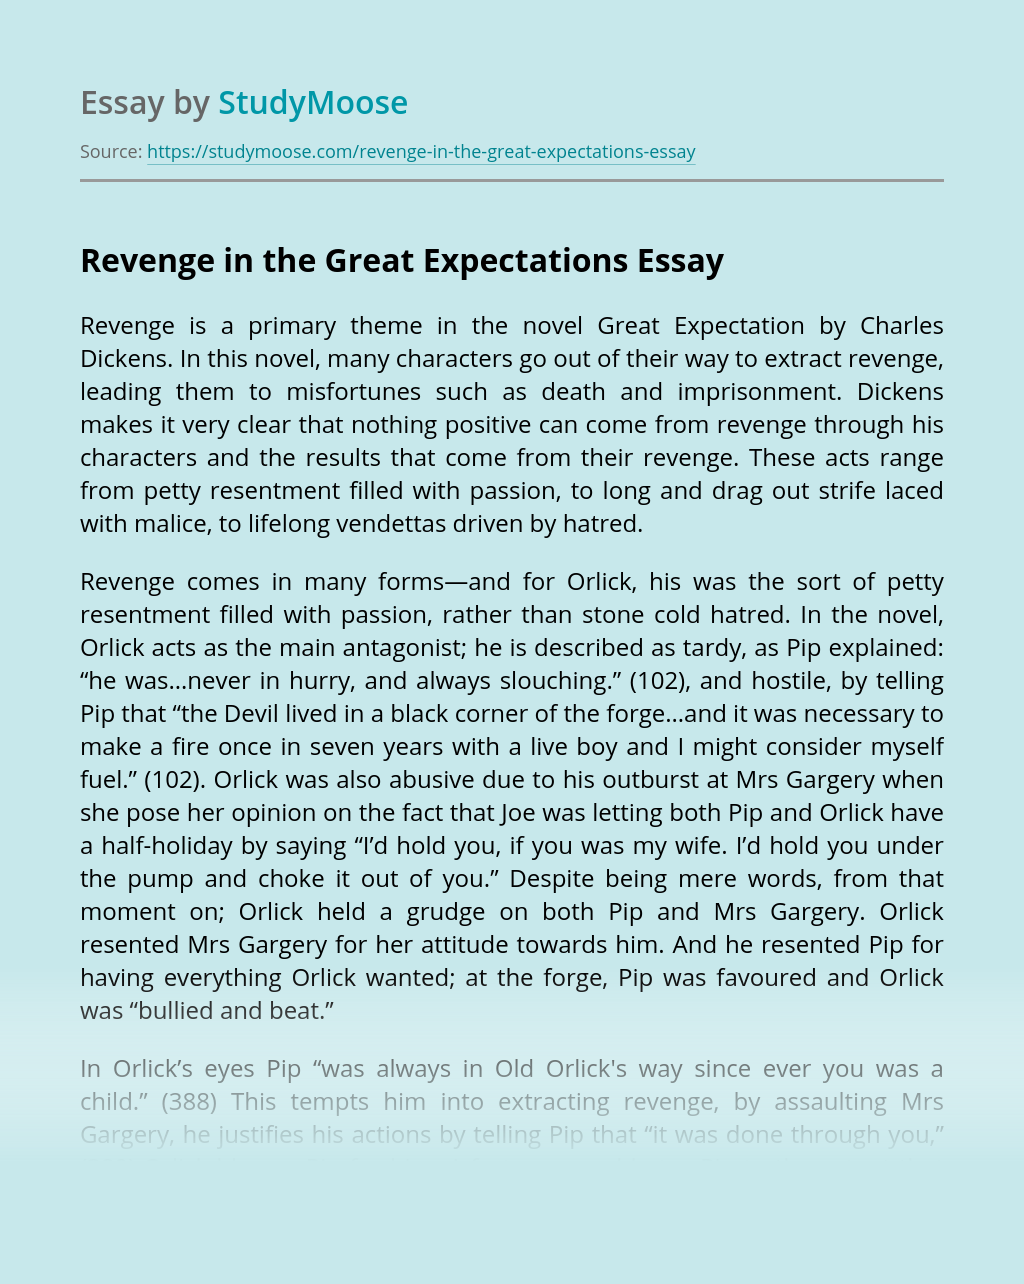 Revenge in the Great Expectations